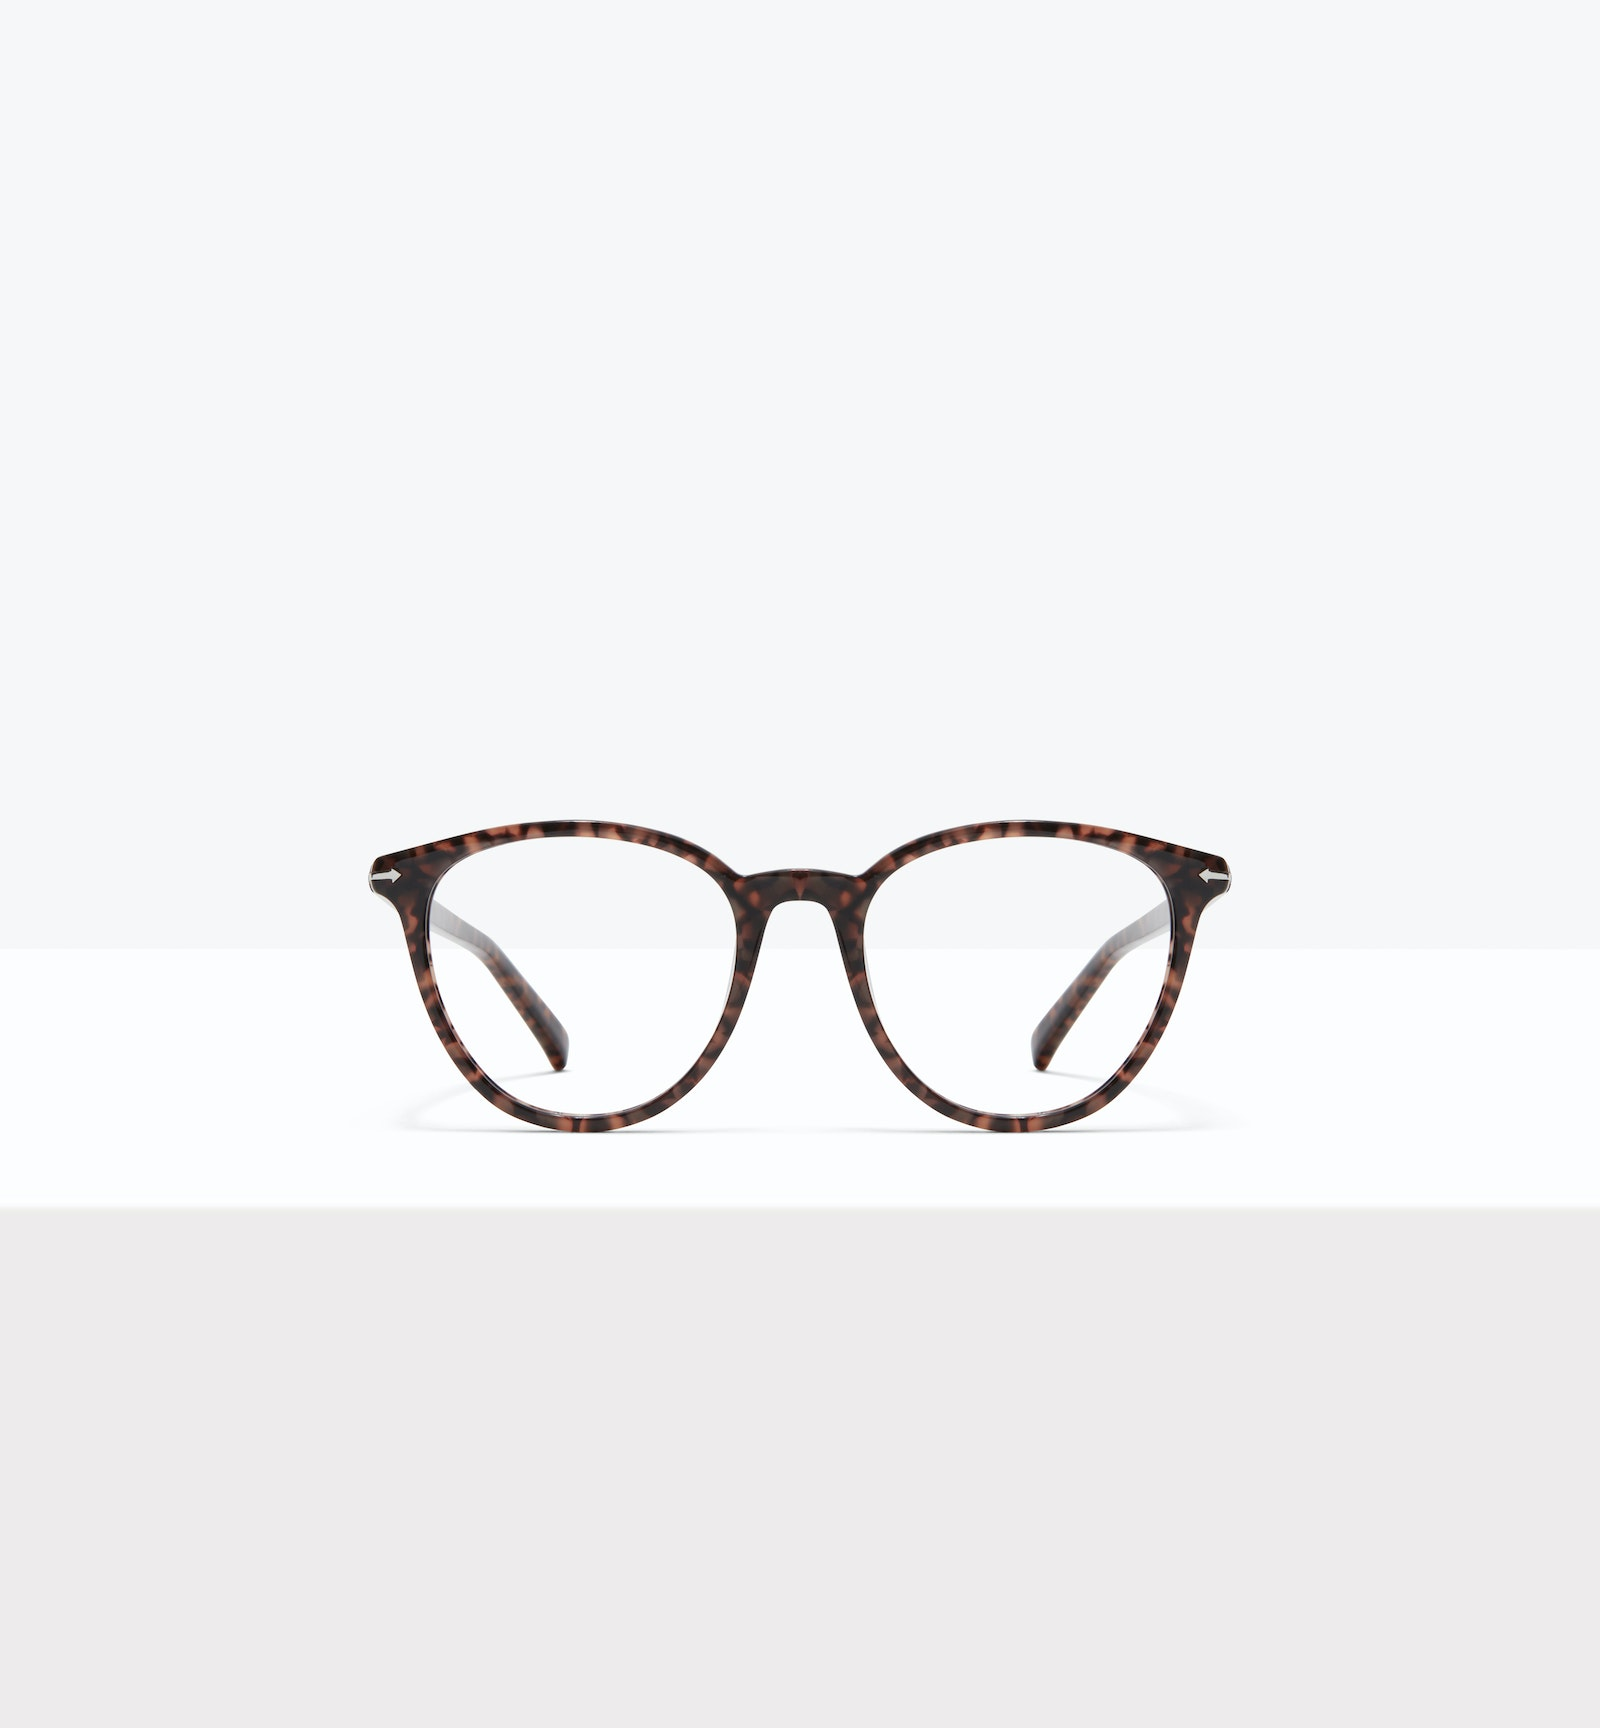 Affordable Fashion Glasses Round Eyeglasses Women London Leo